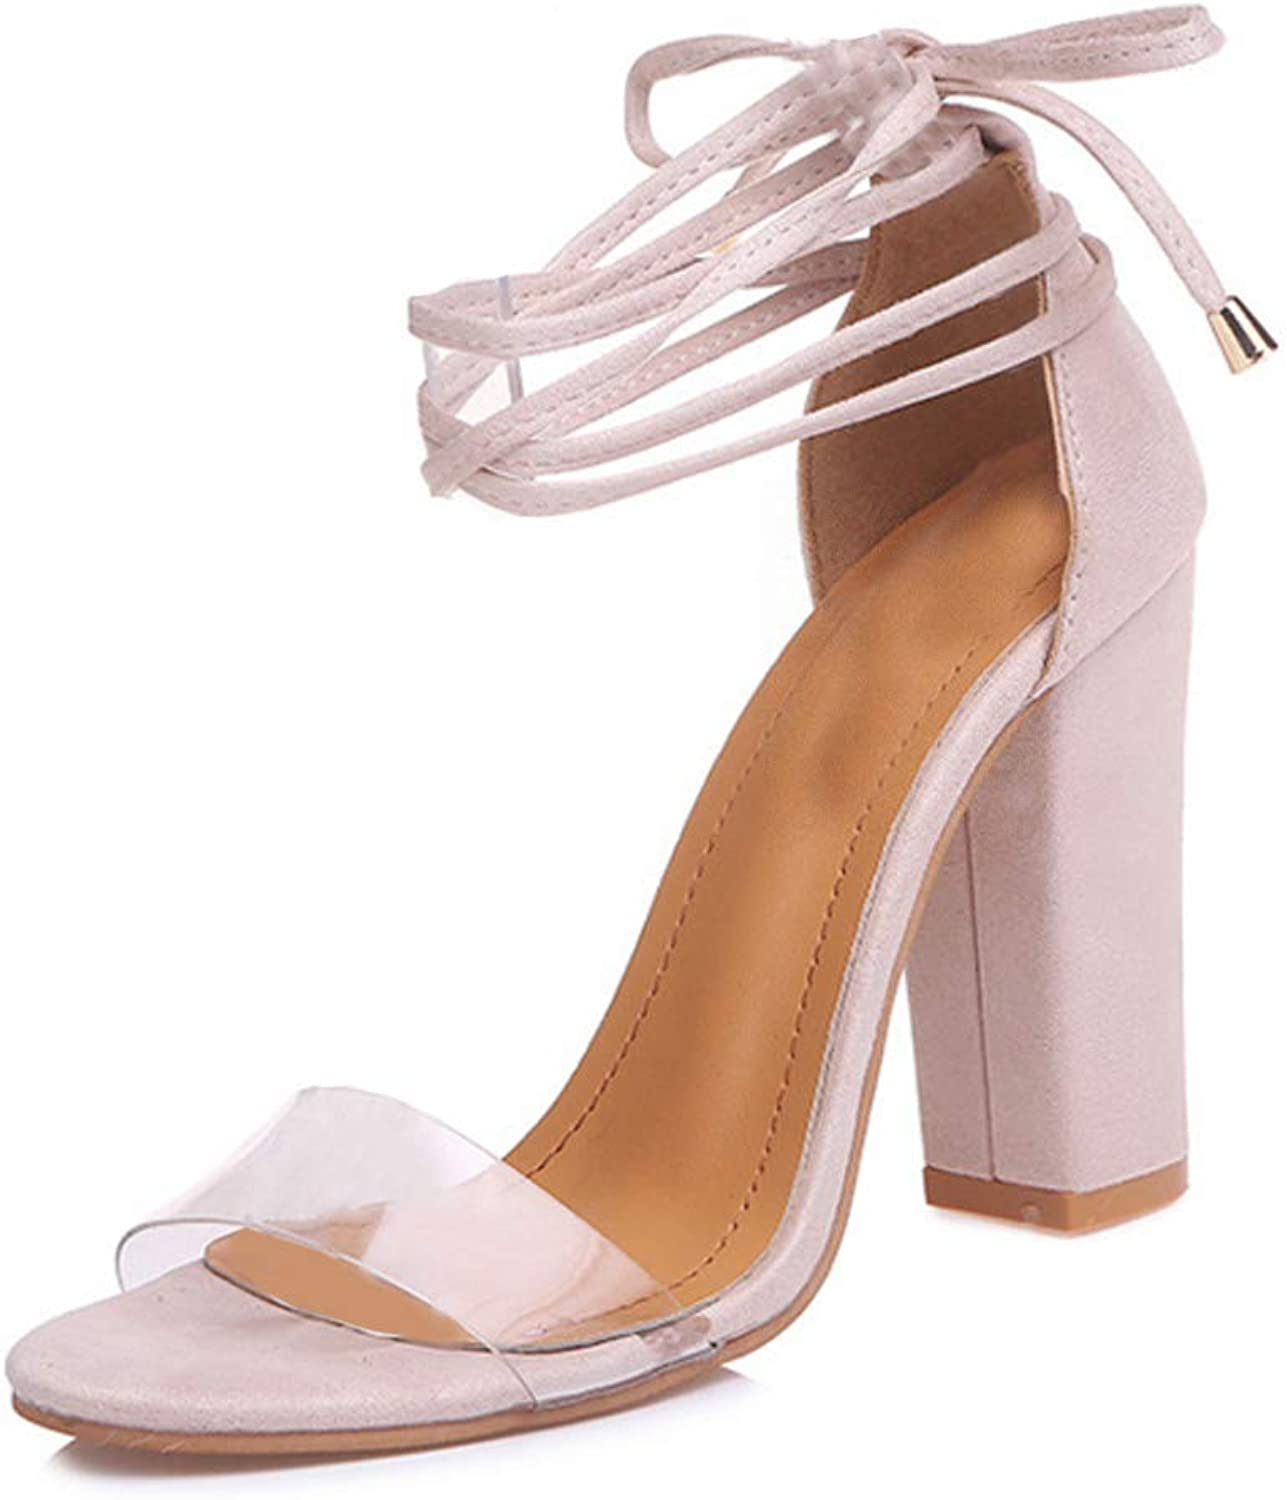 Huicai Women's Fashion high-Heeled Sandals Party Transparent Sweet Fashion shoes